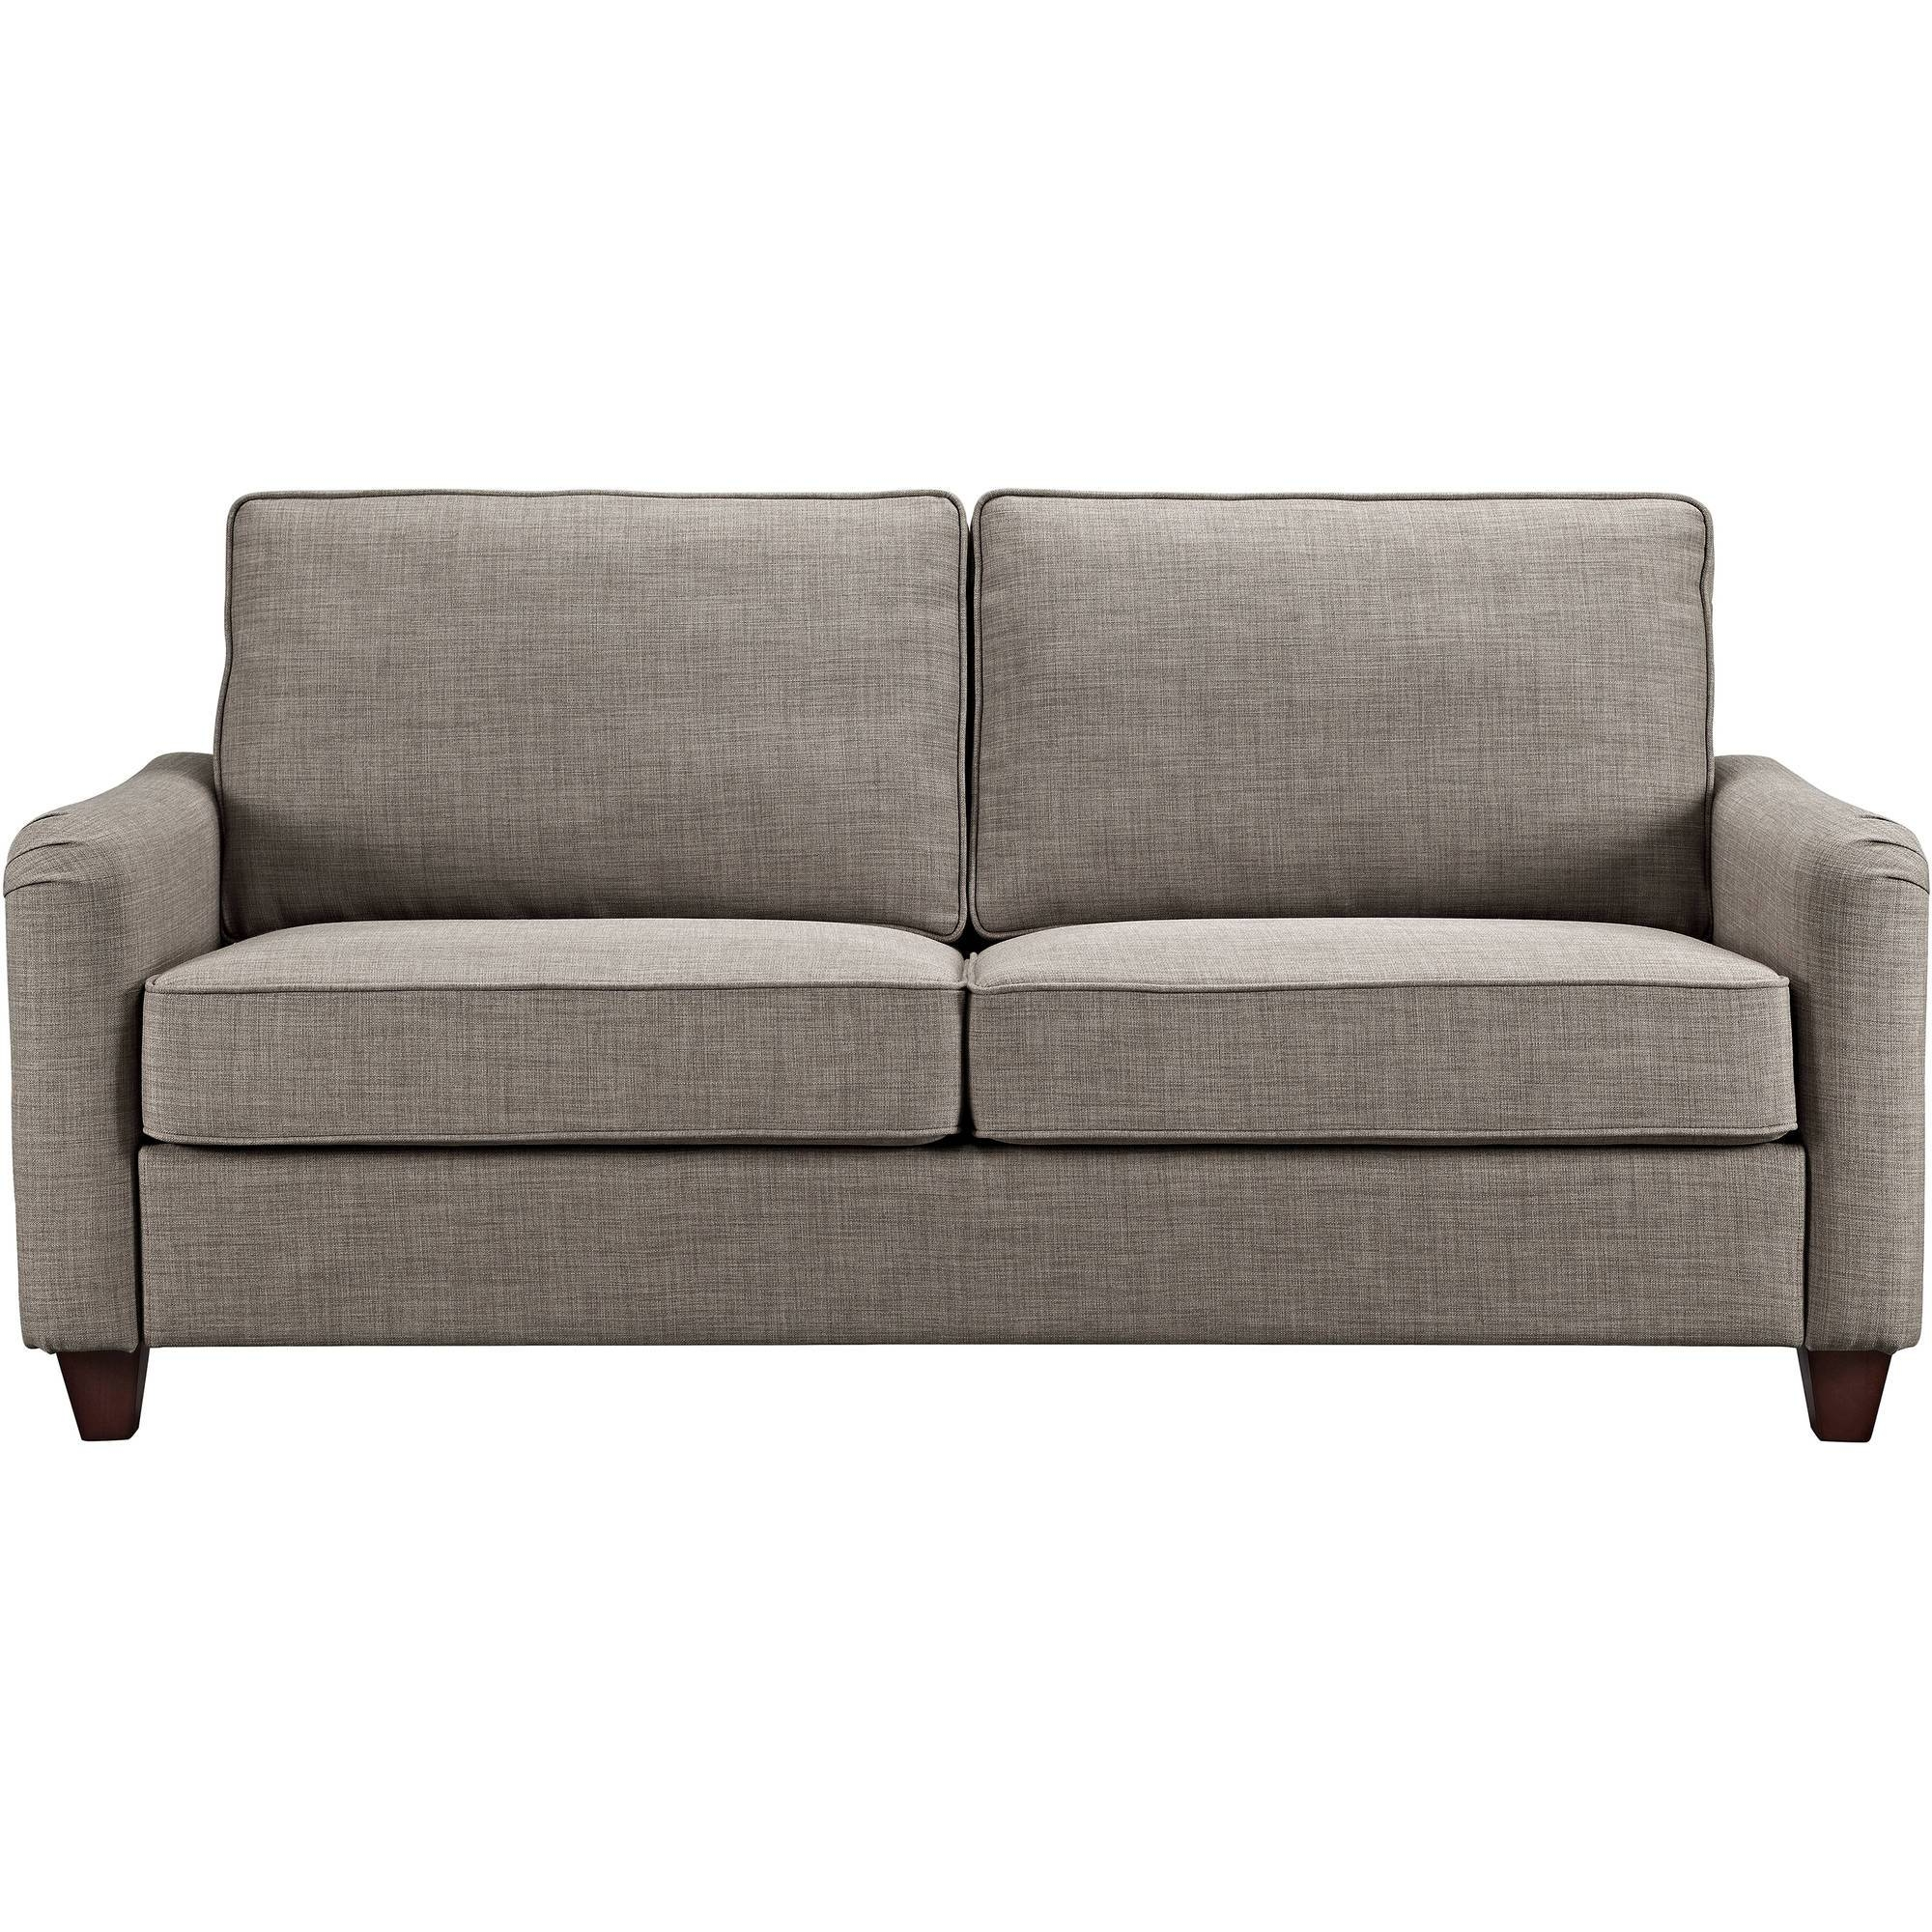 Living Room Furniture throughout Sofas Cheap Prices (Image 10 of 30)